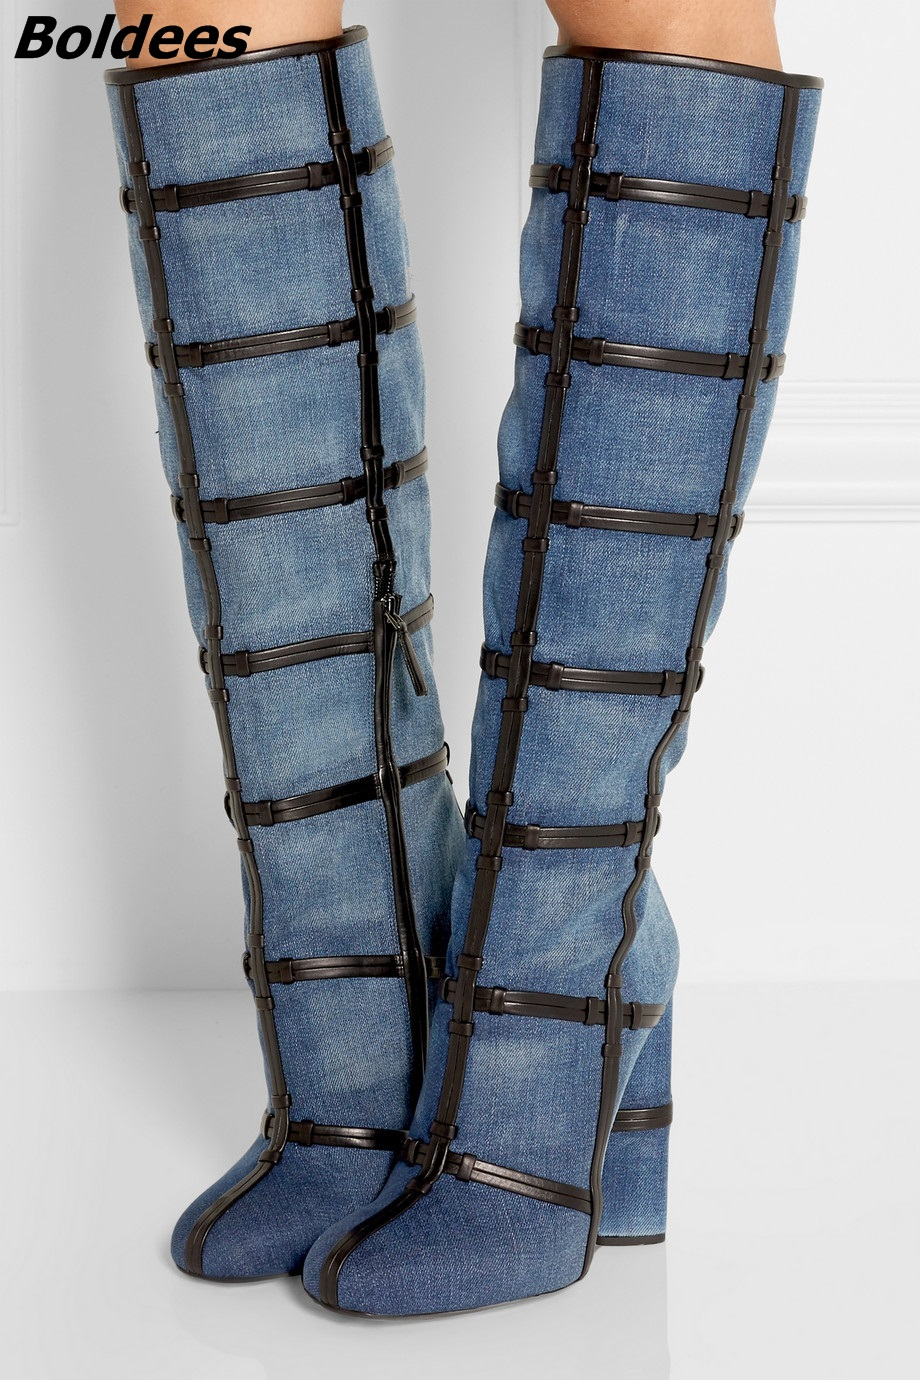 Trendy Design Blue Jeans Block Heel Keen High Boots Classy Denim PU Patchwork Round Toe Boots Fashion Chunky Heel Knee HighShoes men s cowboy jeans fashion blue jeans pant men plus sizes regular slim fit denim jean pants male high quality brand jeans